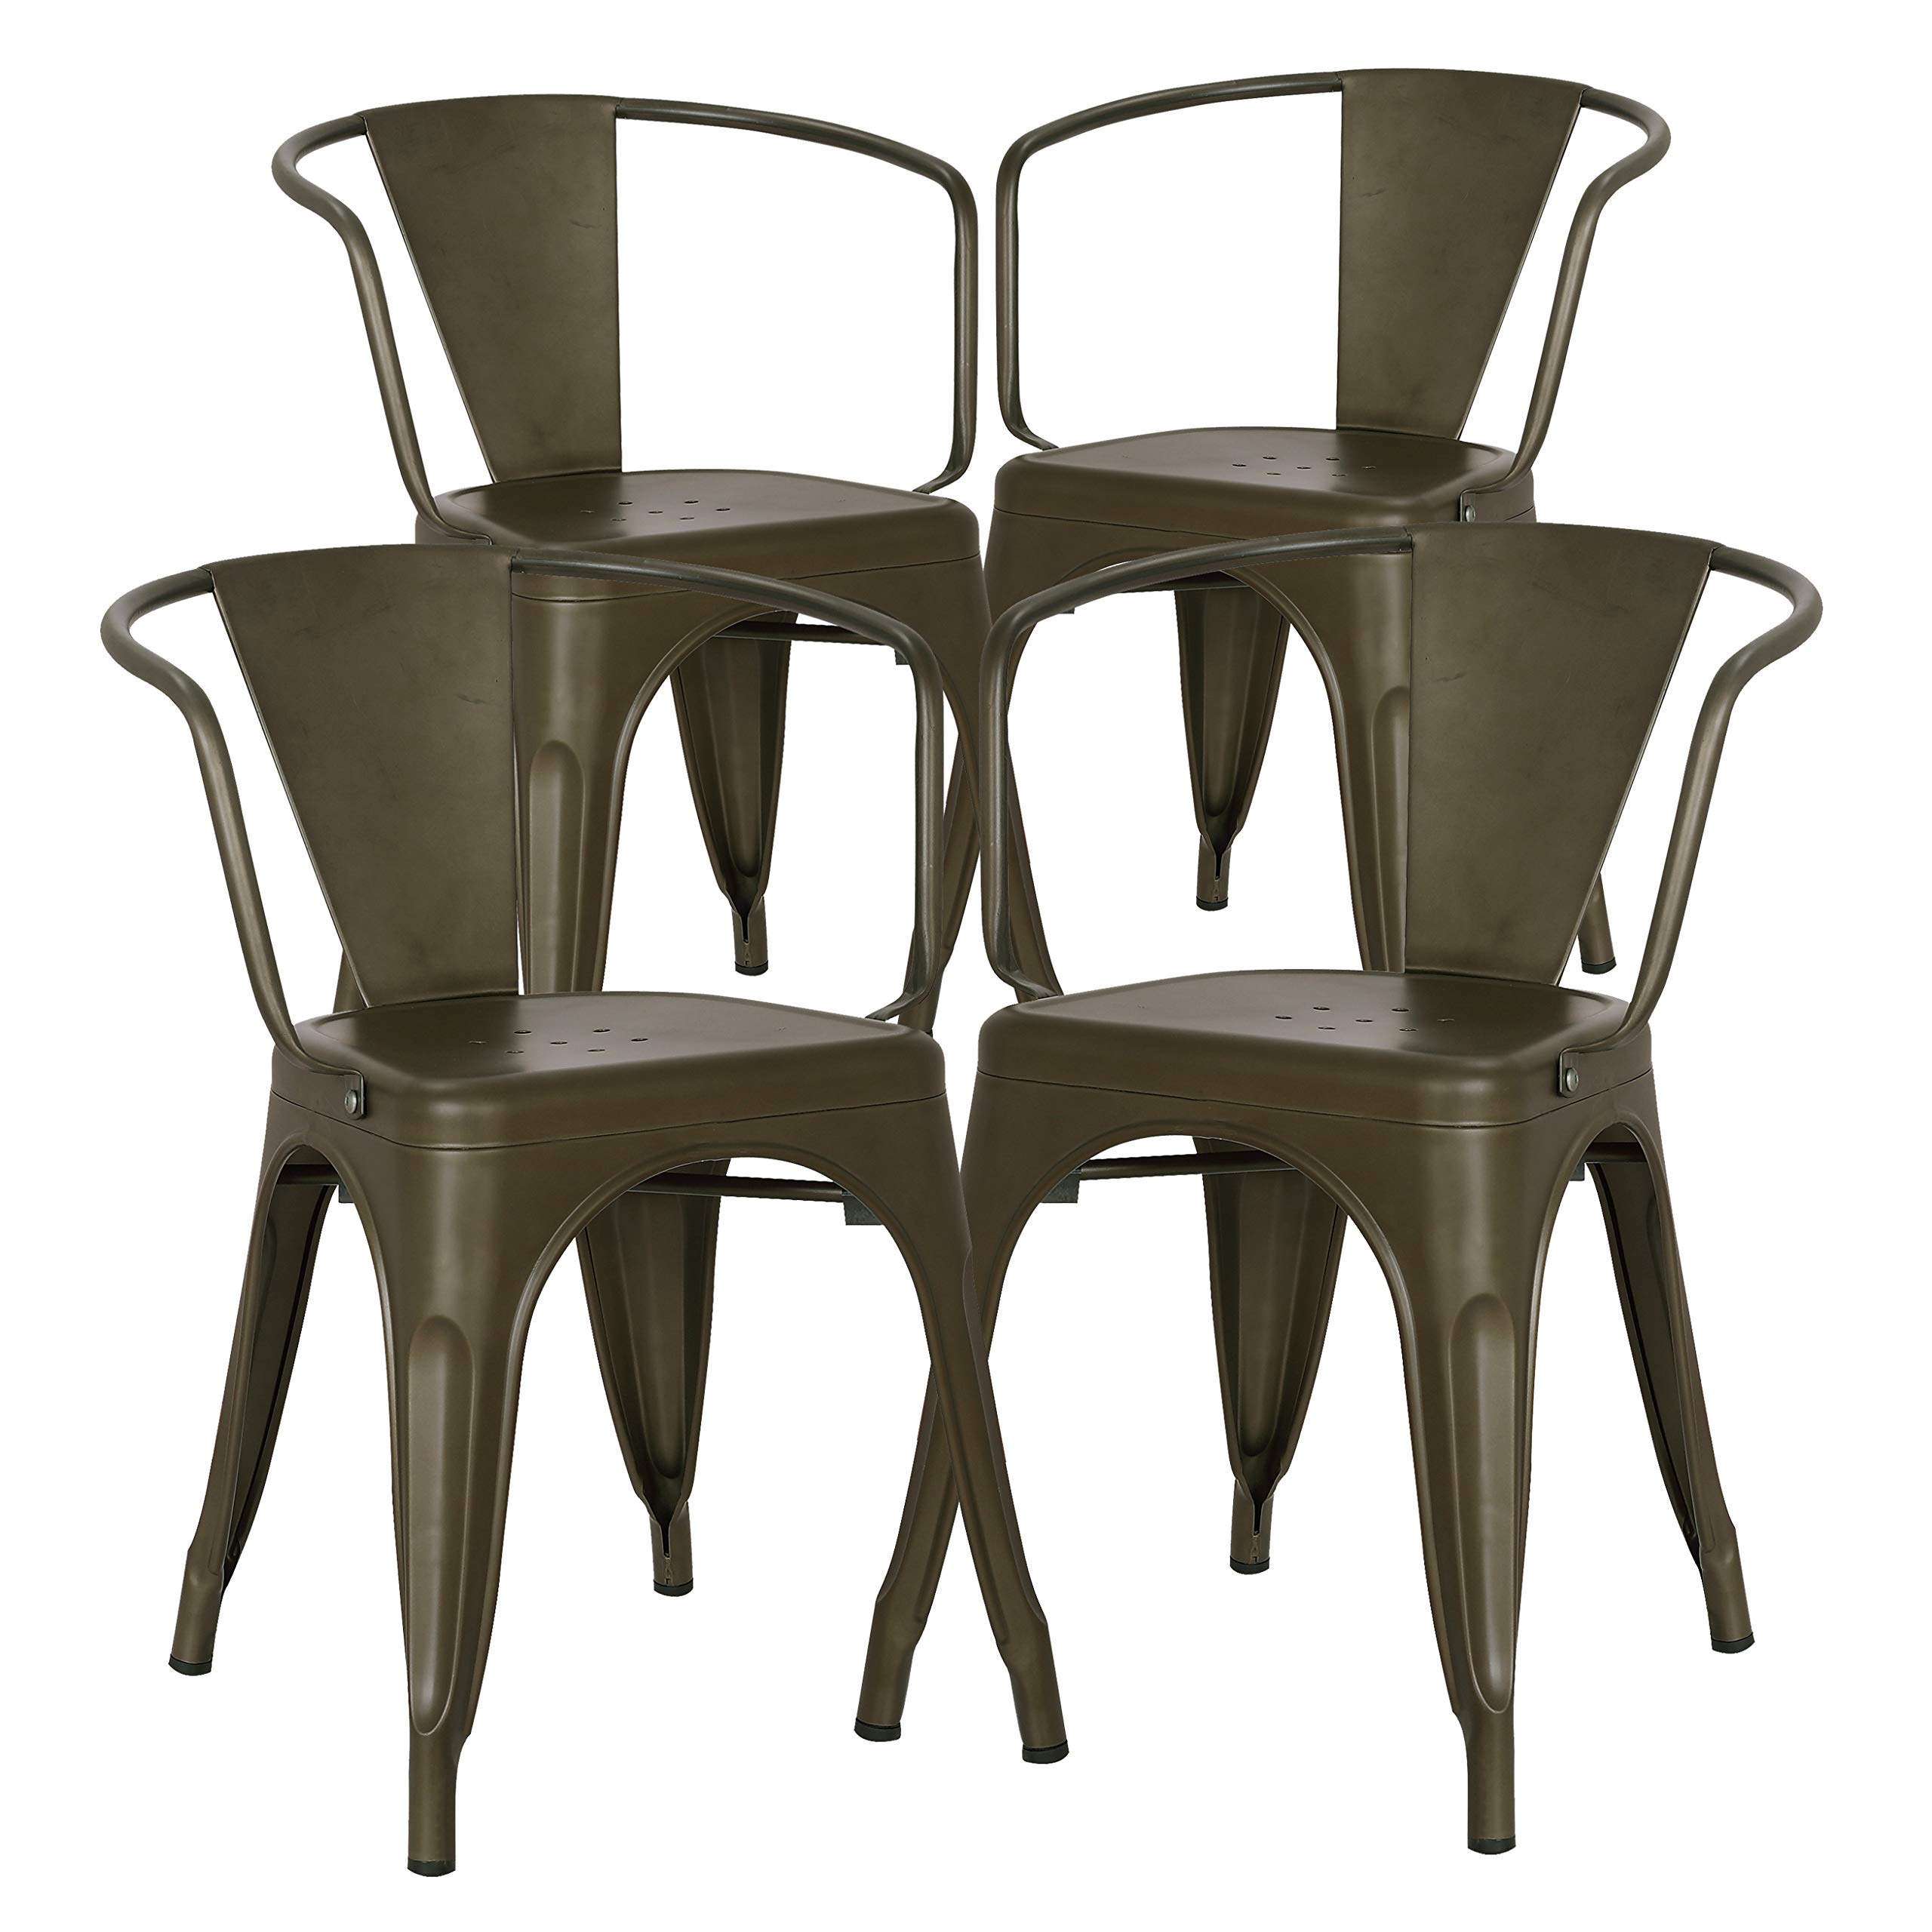 Poly and Bark Trattoria Arm Chair in Bronze (Set of 4) by POLY & BARK (Image #1)